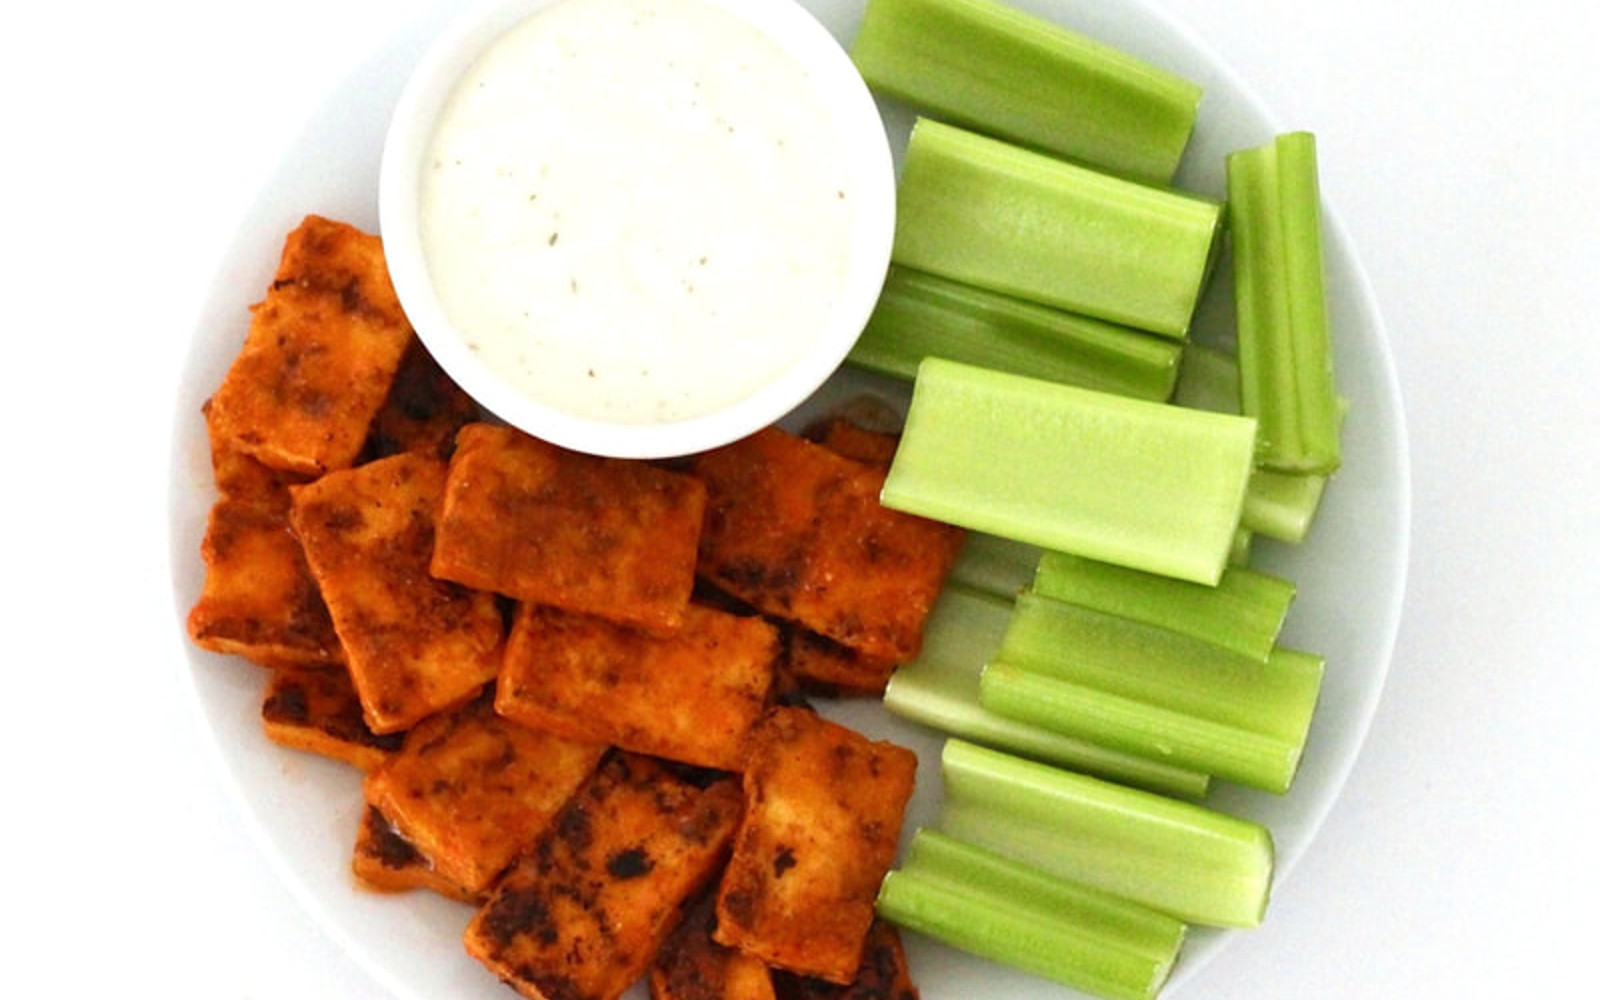 Vegan Gluten-Free Oil-Free Spicy Buffalo Tofu Wings with celery and vegan ranch